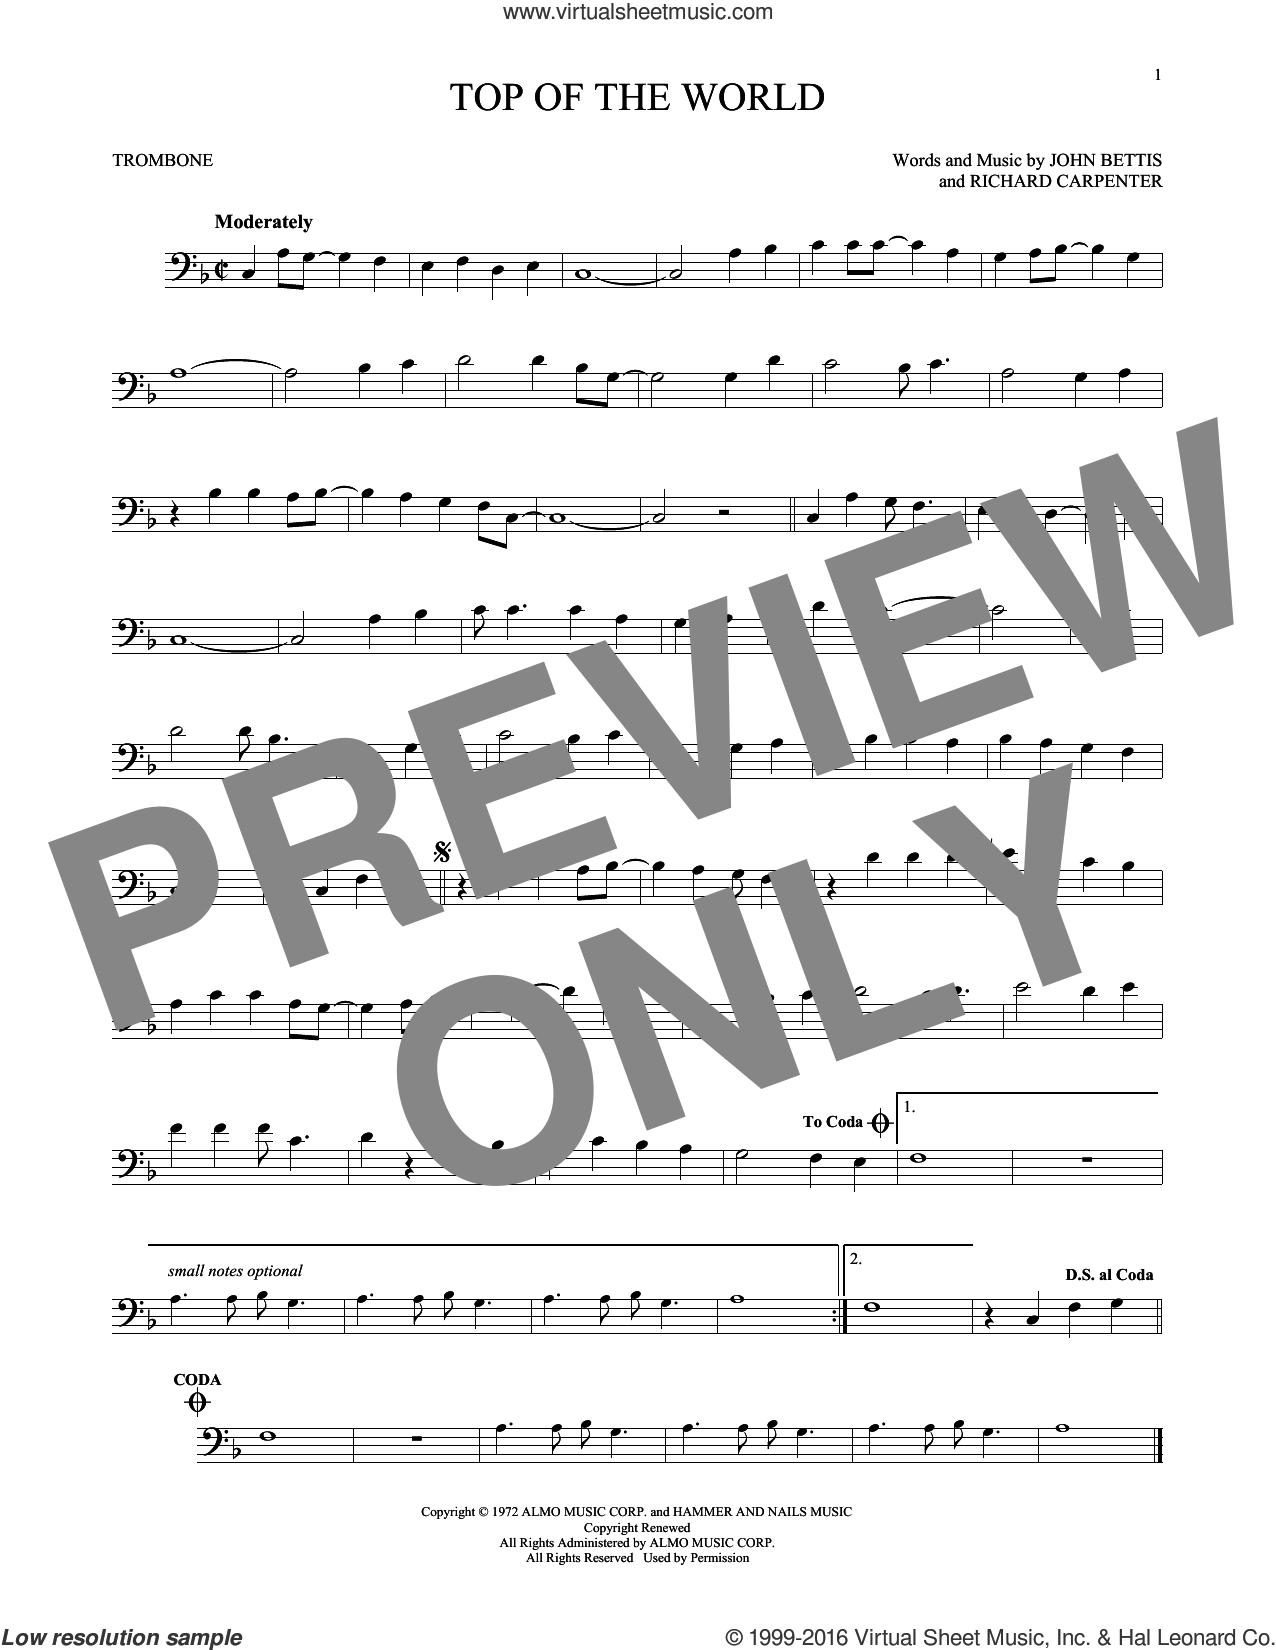 Top Of The World sheet music for trombone solo by Richard Carpenter, Carpenters and John Bettis. Score Image Preview.